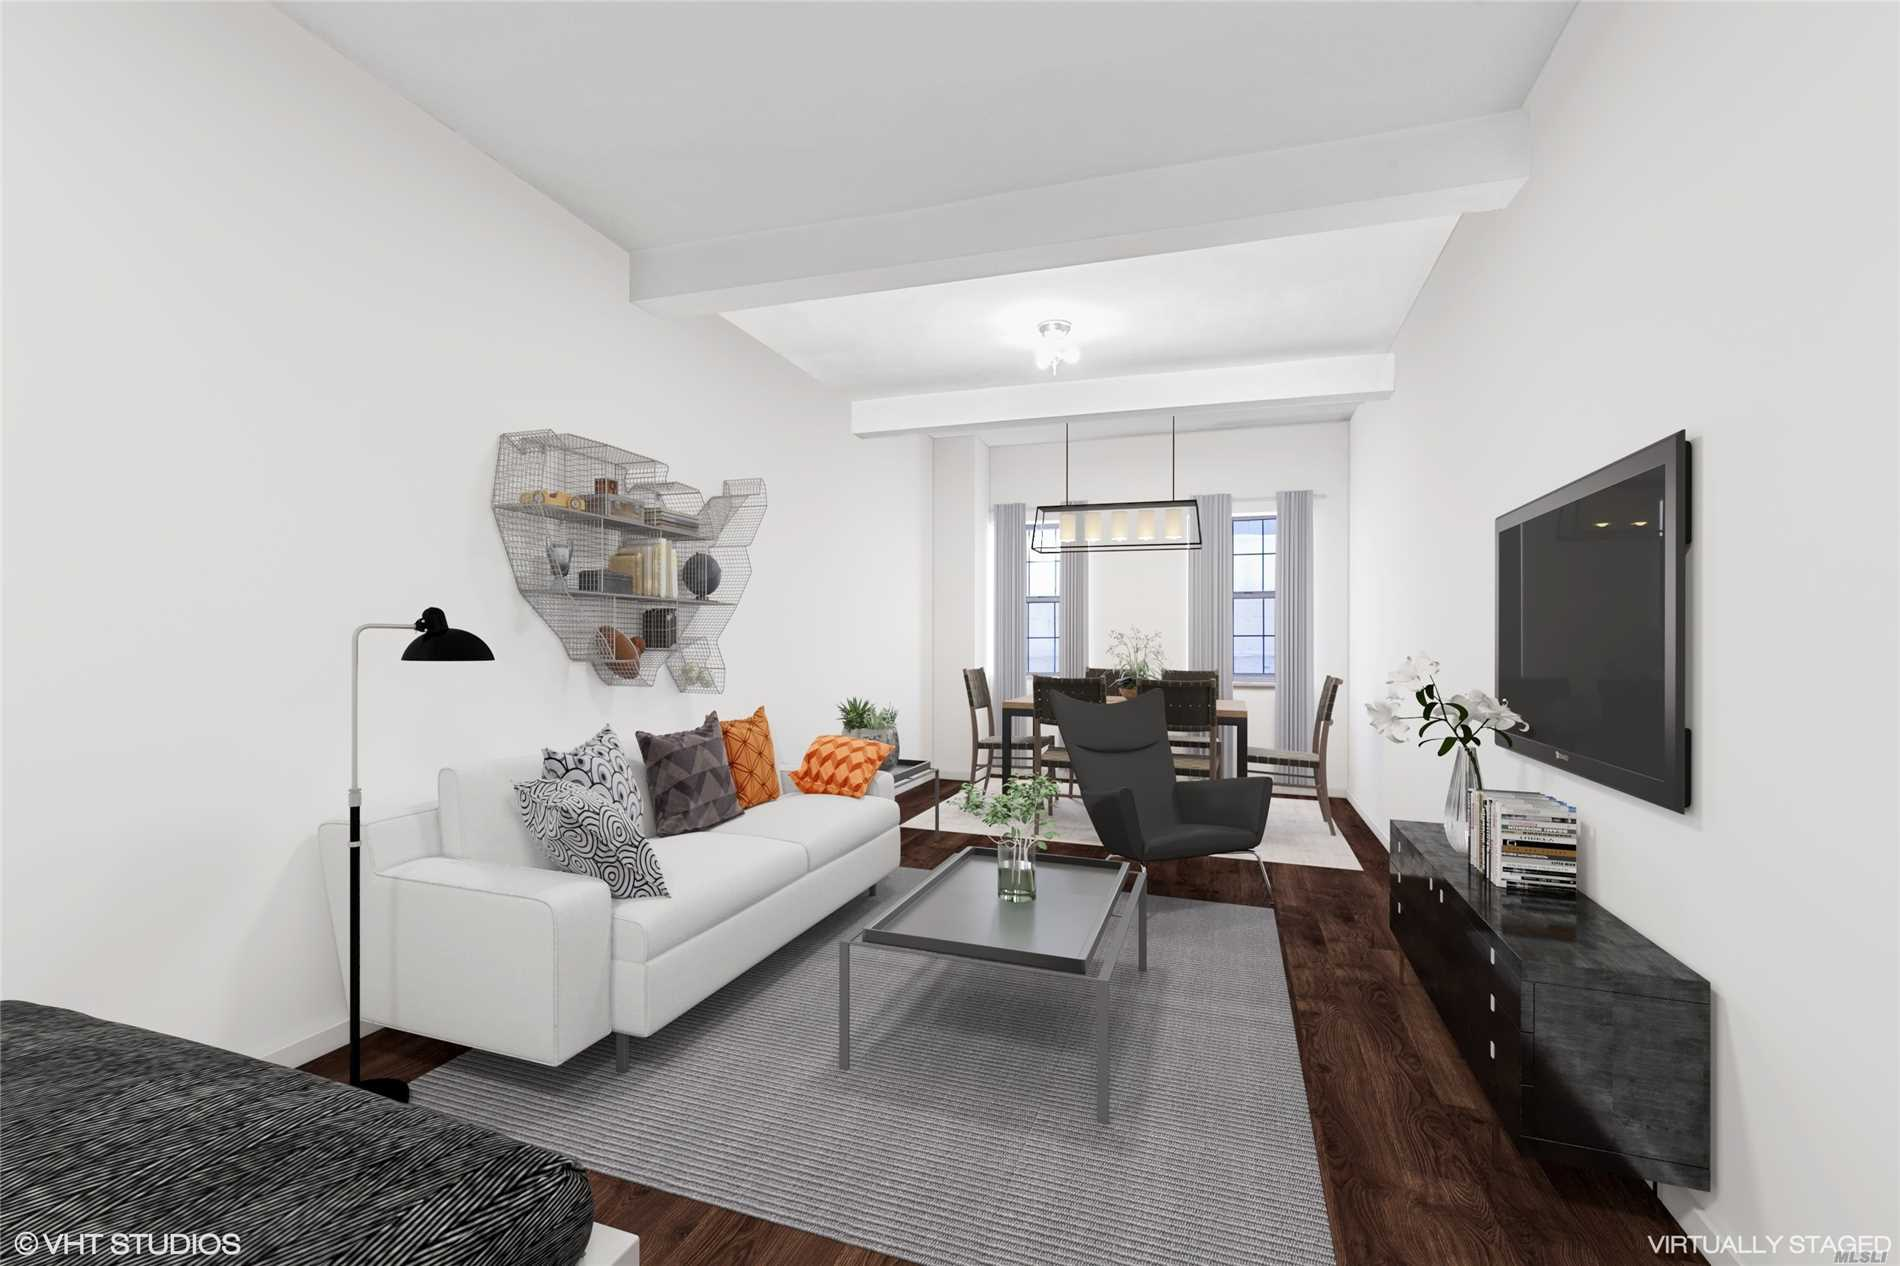 Industrial Chic, ground level HUGE studio, amazing living space!. CRAZY LOW MAINTENANCE! Needs TLC, priced right! Windowed eat-in kitchen and windowed bath. Just a half block to train and shopping. Express bus to NYC two blocks.